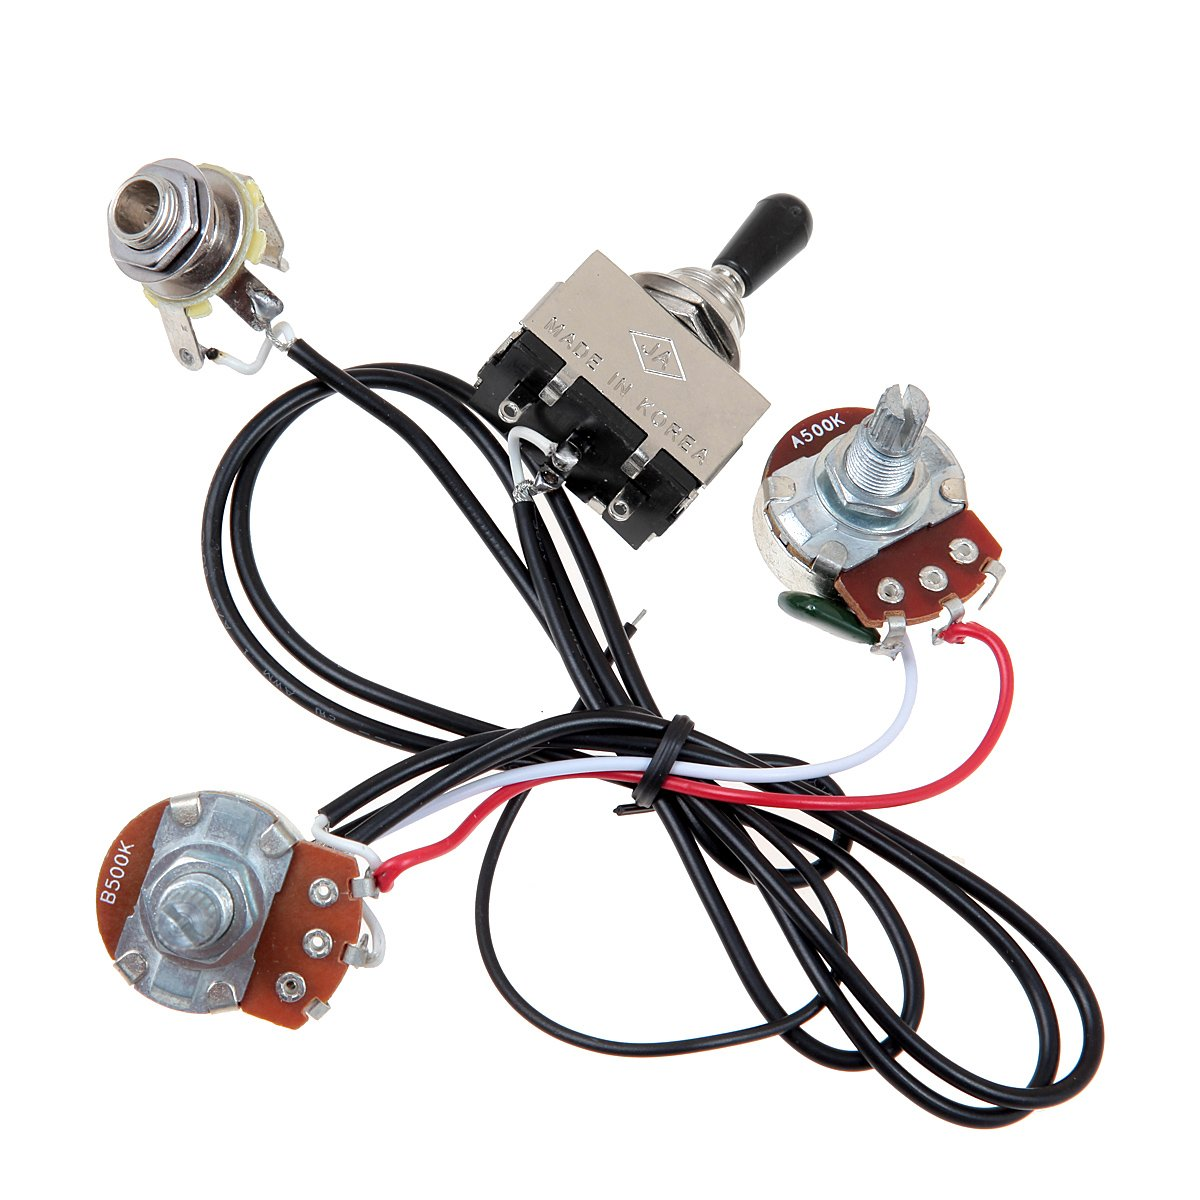 71%2BaA7TOd1L._SL1200_ amazon com kmise mi0321 guitar wiring harness prewired two pickup guitar wiring harness kits at gsmx.co